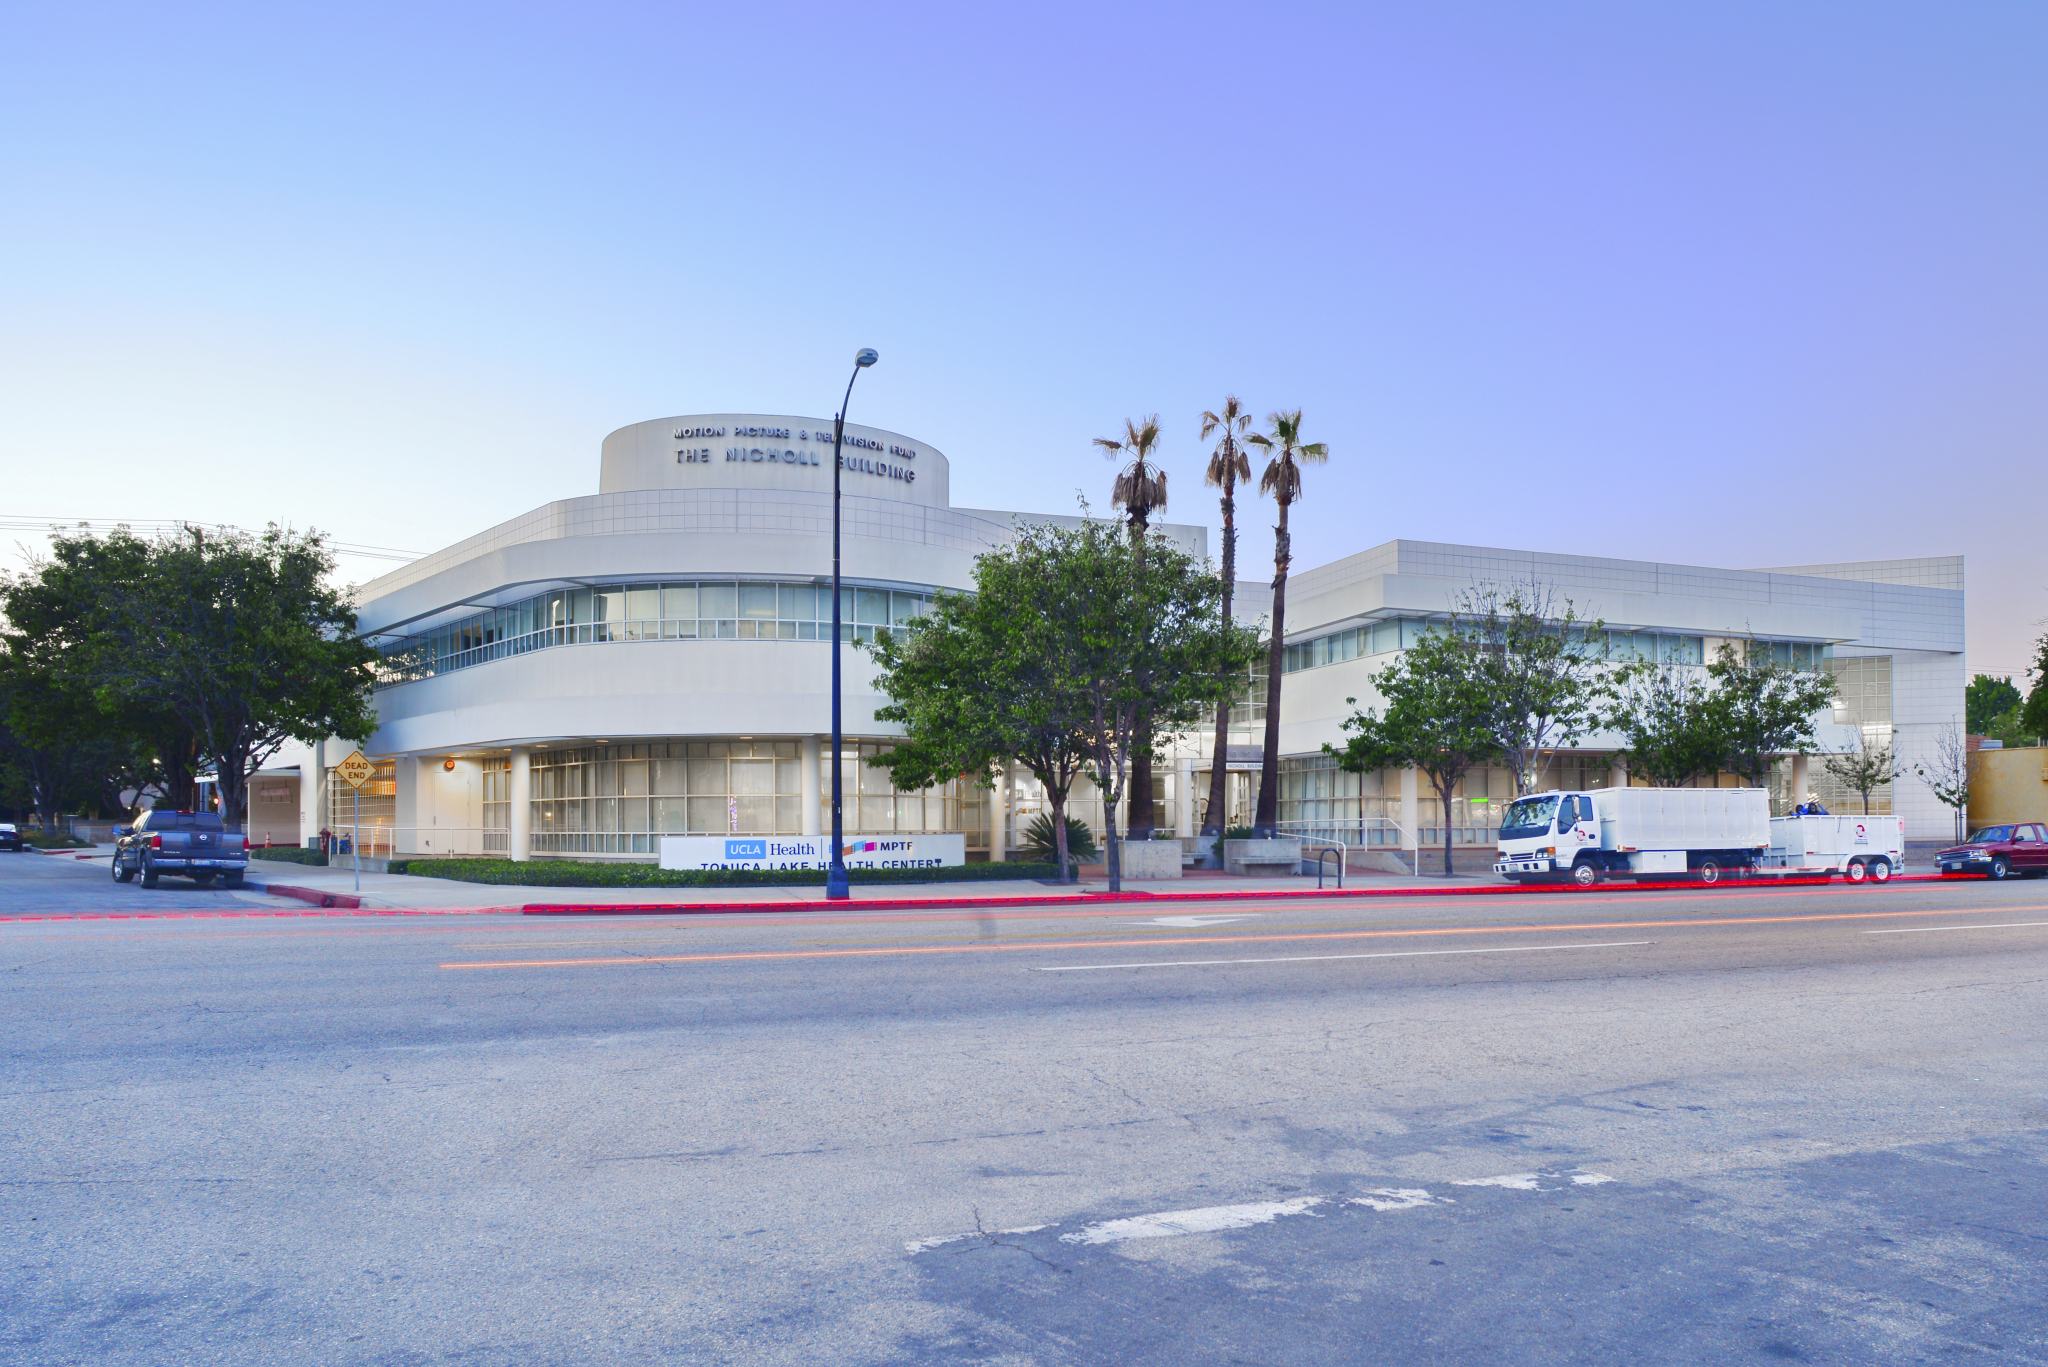 toluca-lake-health-center-photo-1